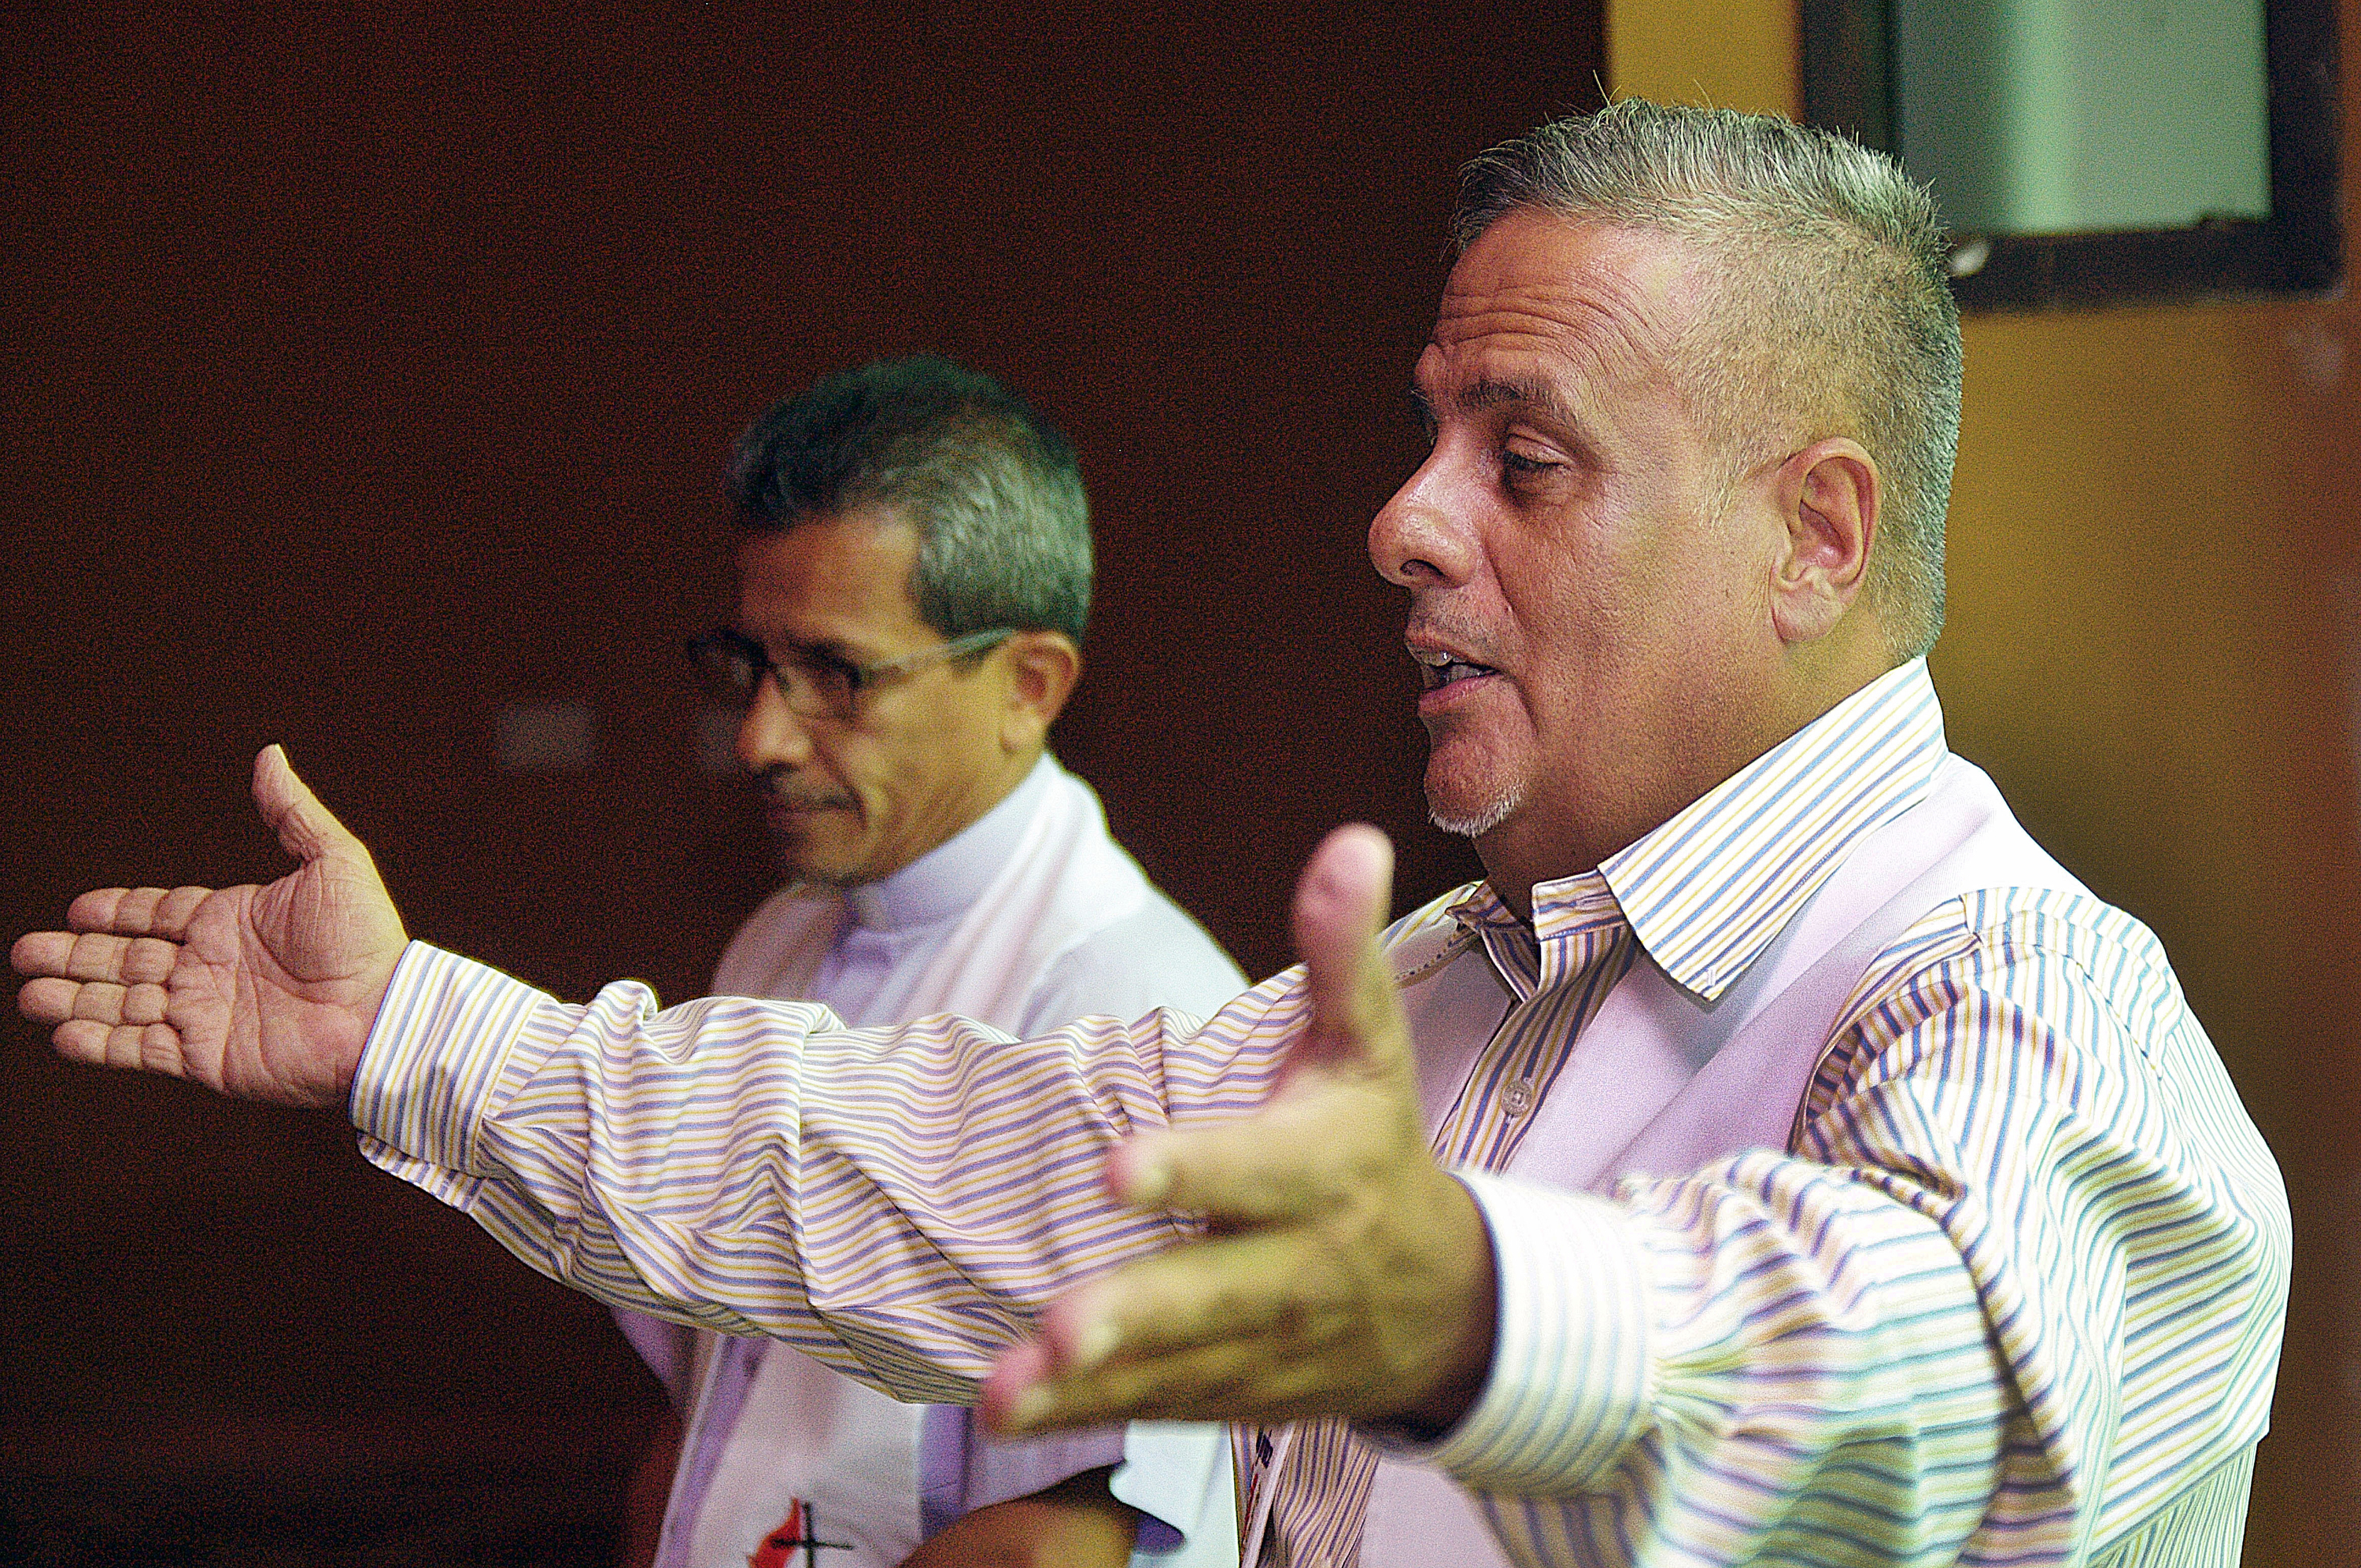 Pastor Fernando Mendez, Christian Methodist Community of Venezuela, right, and Bishop Toby Ramirez, Council of Evangelical Methodist Churches of Venezuela, presided together during the sacrament of communion, which served as a symbol of the spirit of unity that reigned during a dialogue about establishing a national Methodist church presence in Venezuela. Photo by Gustavo Vasquez, UMNS.